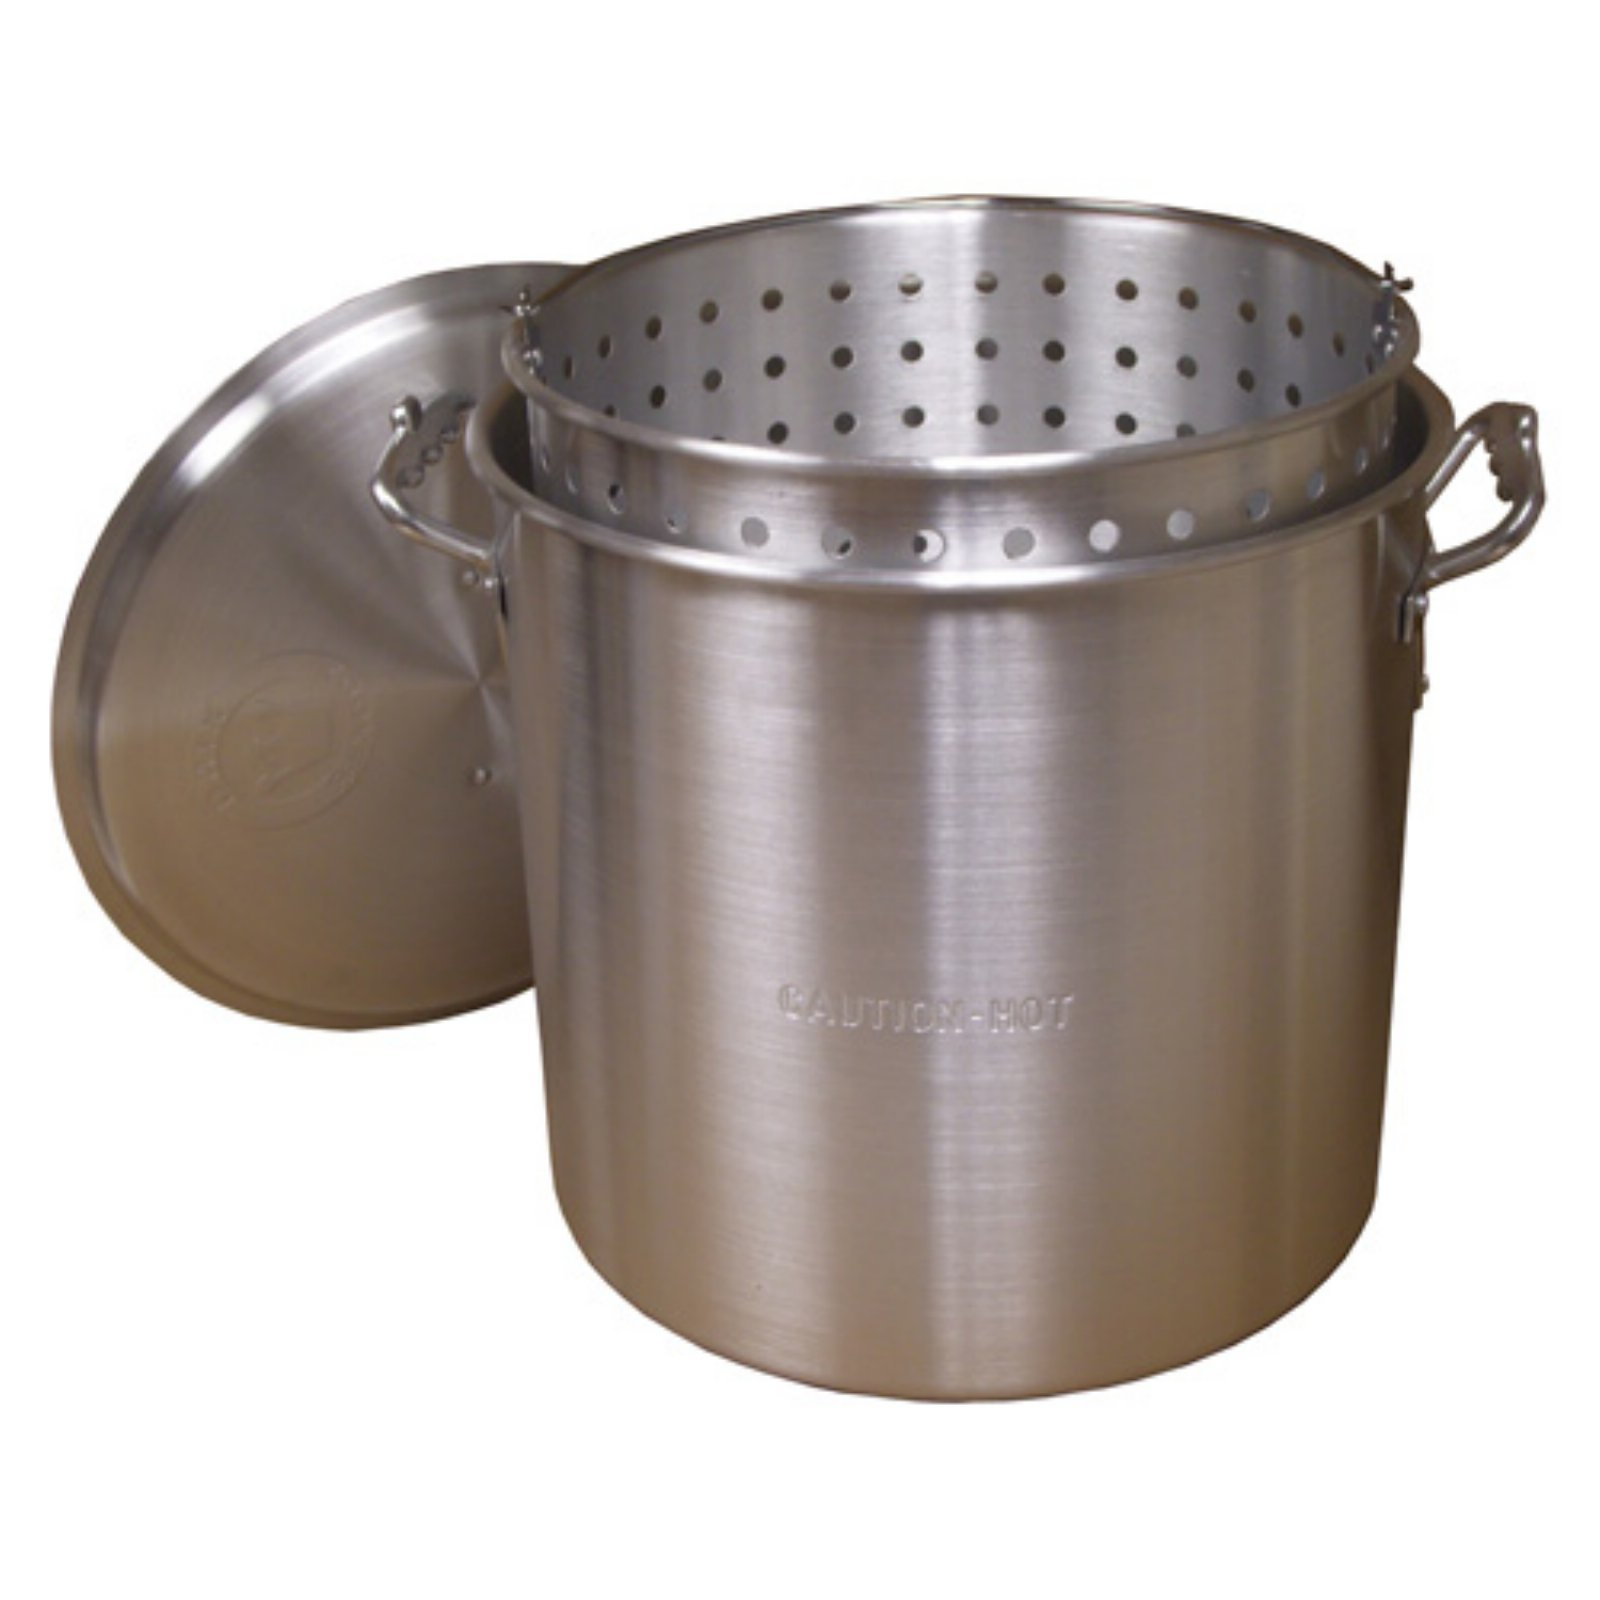 80 Qt. Aluminum Boiling Pot with Basket and Lid